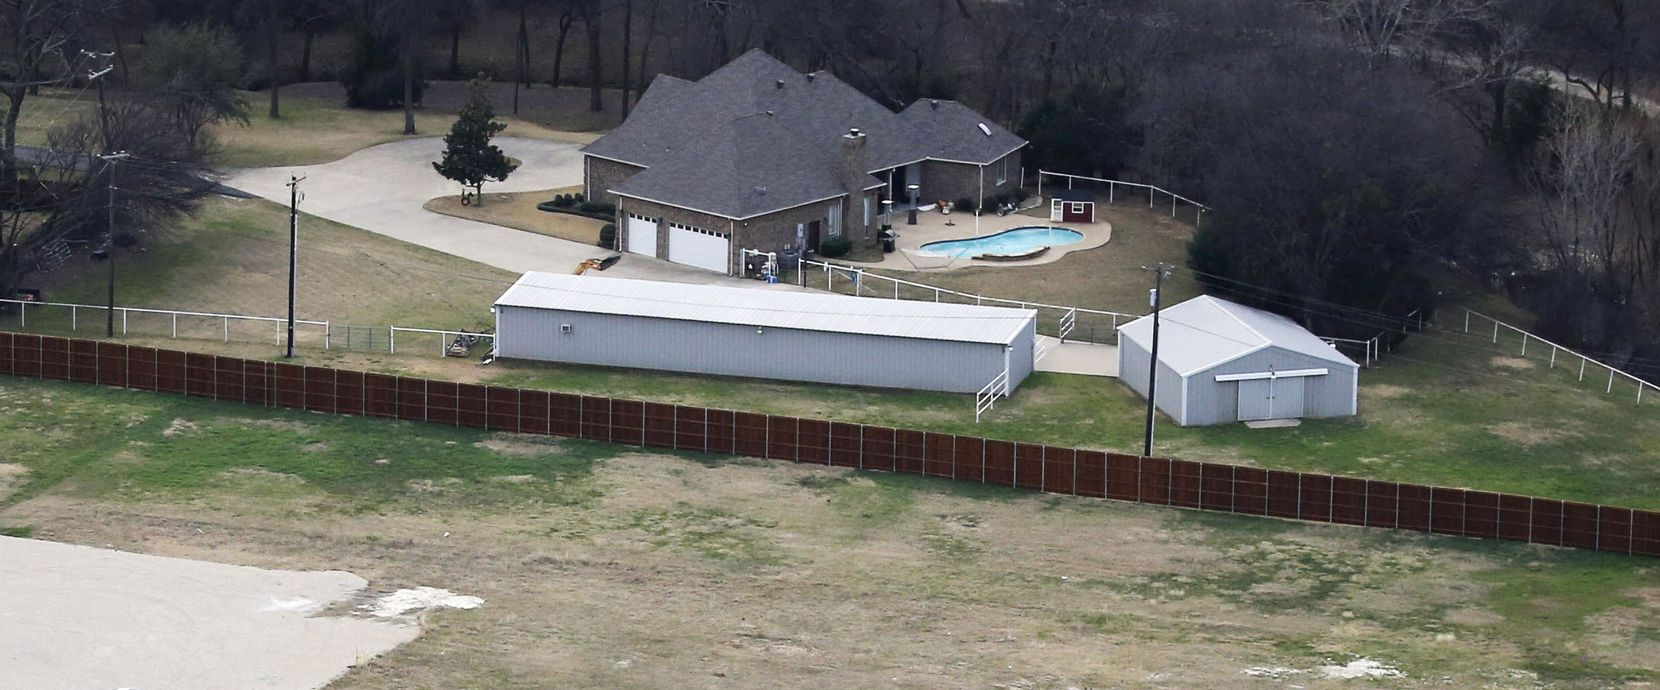 The home of Grand Prairie ISD Superintendent Susan Simpson Hull in Grand Prairie on Thursday, February 2, 2017. GPISD is one of the school districts that provide housing for their superintendents. (Vernon Bryant/The Dallas Morning News)